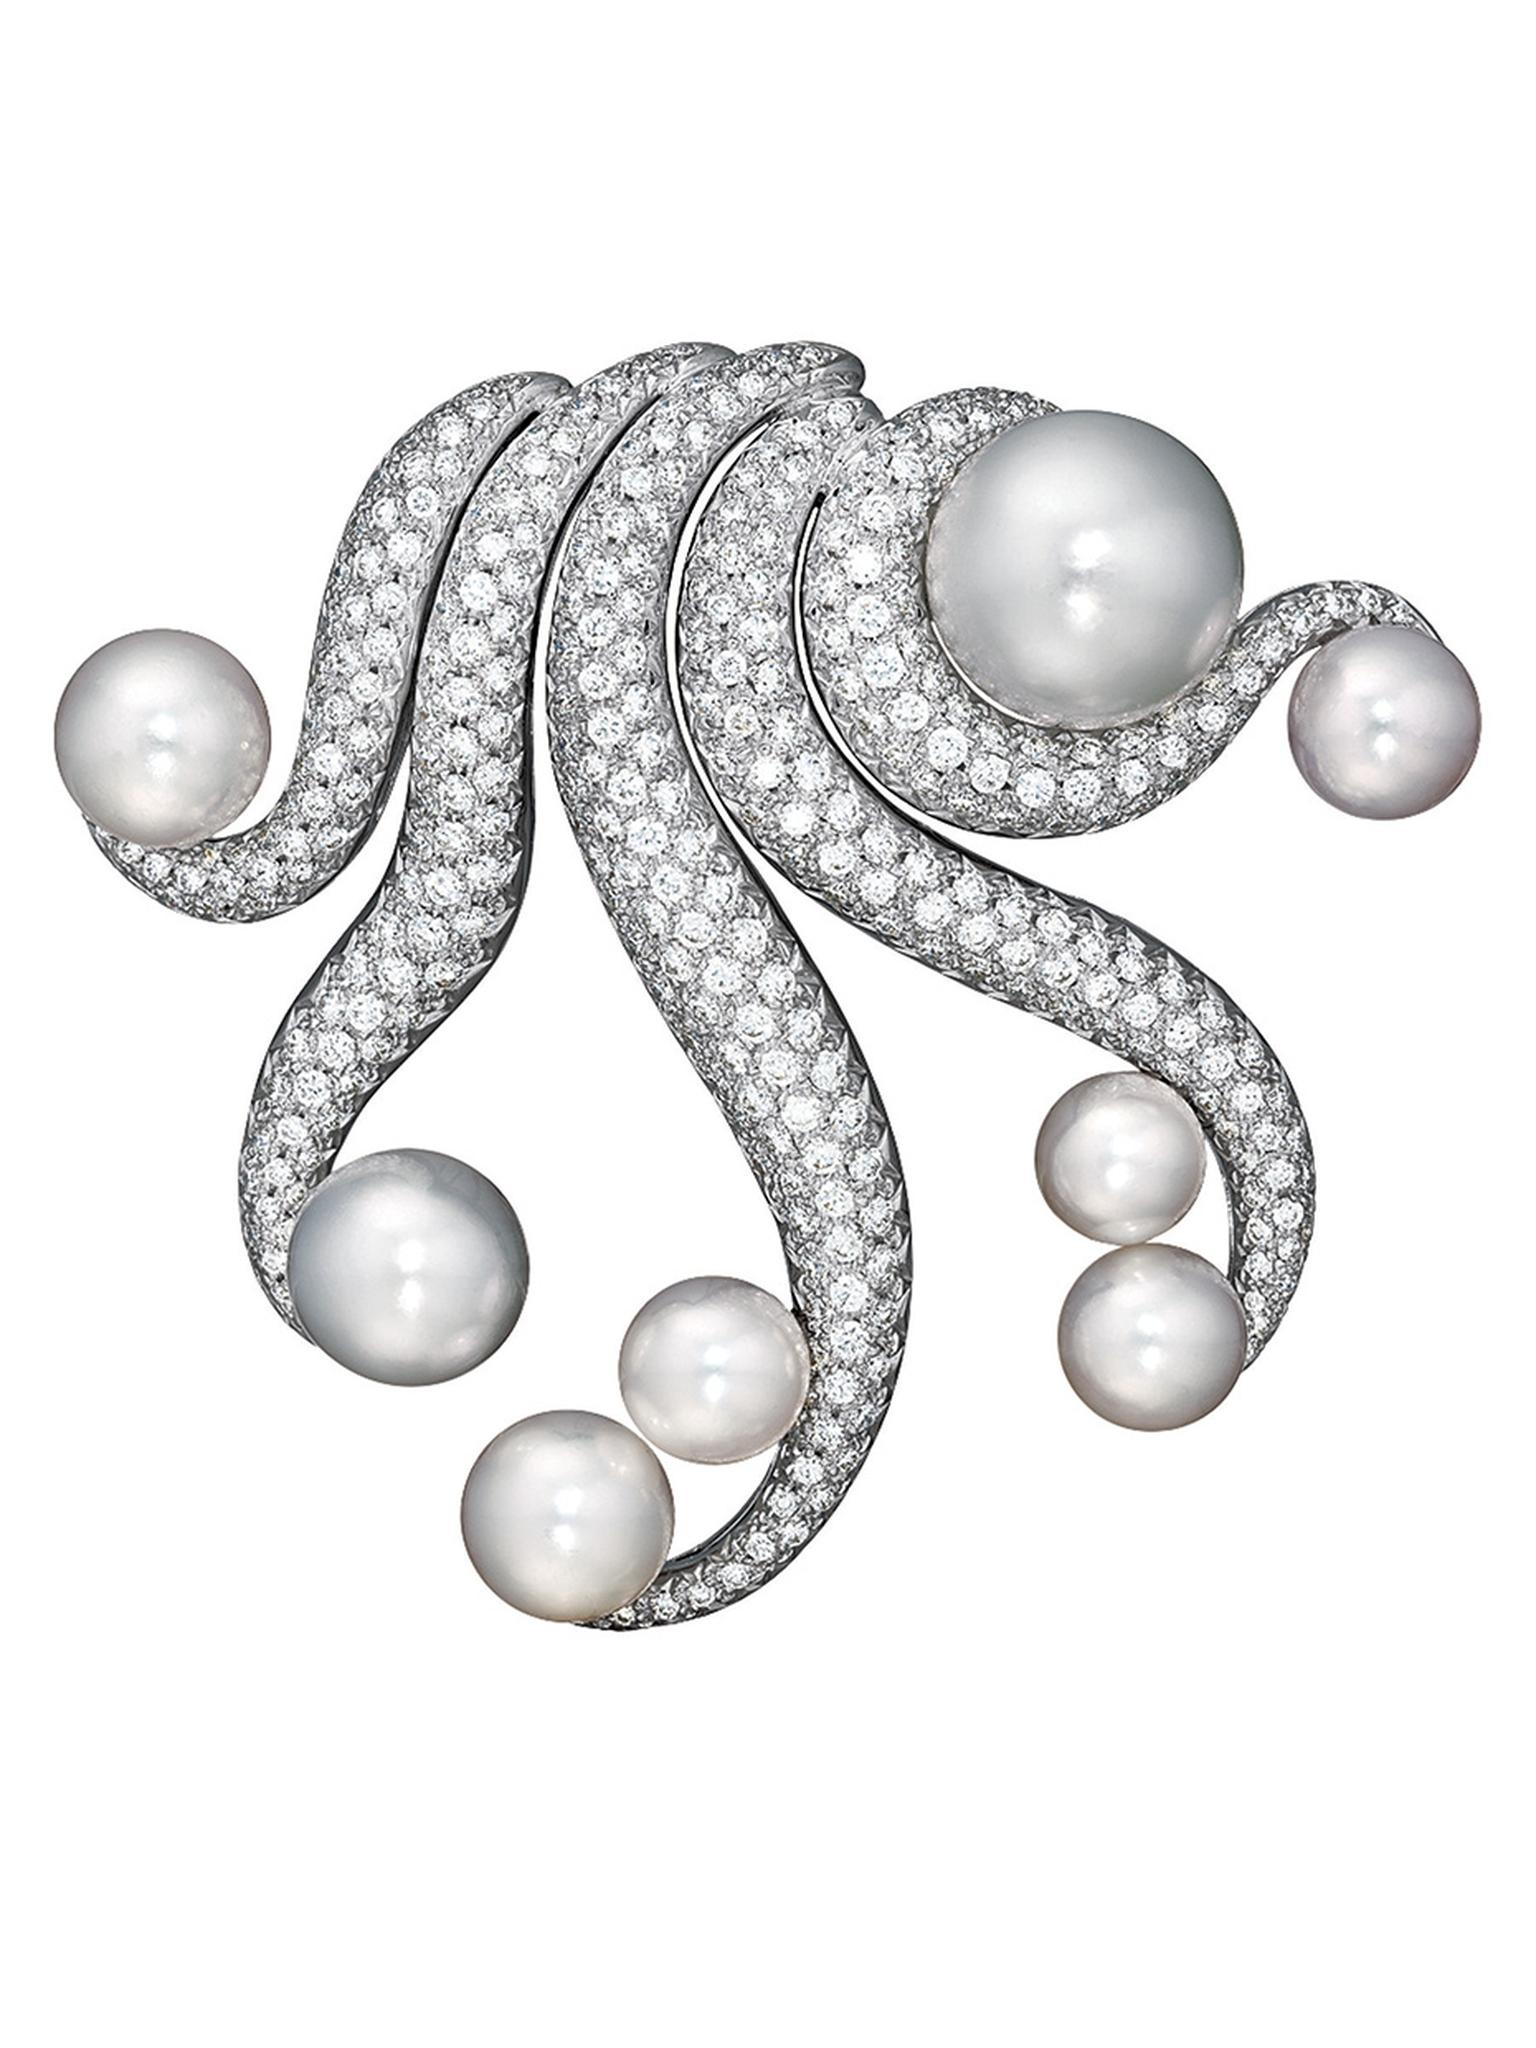 Verdura white gold Octopus brooch with South Sea cultured pearls, Tahitian cultured pearls and diamonds.